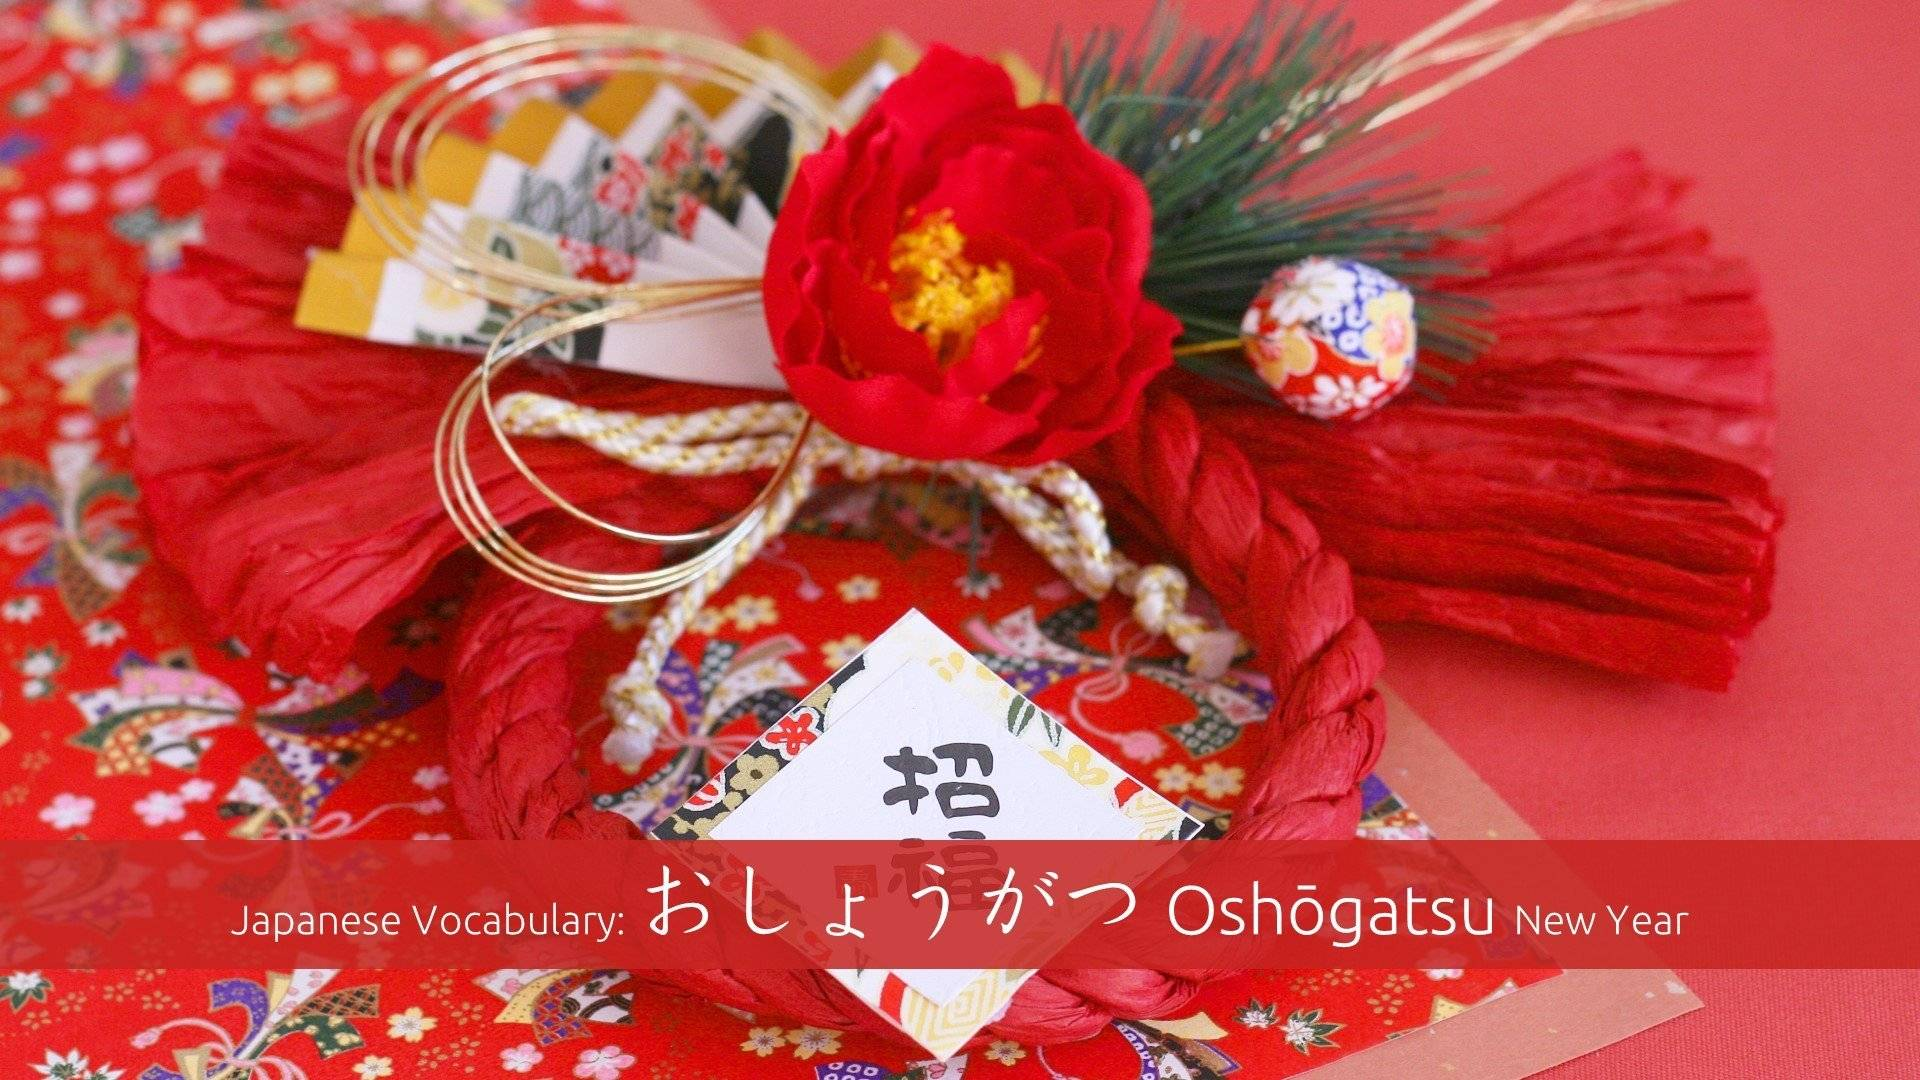 Japanese Vocabulary: New Year おしょうがつ Oshogatsu